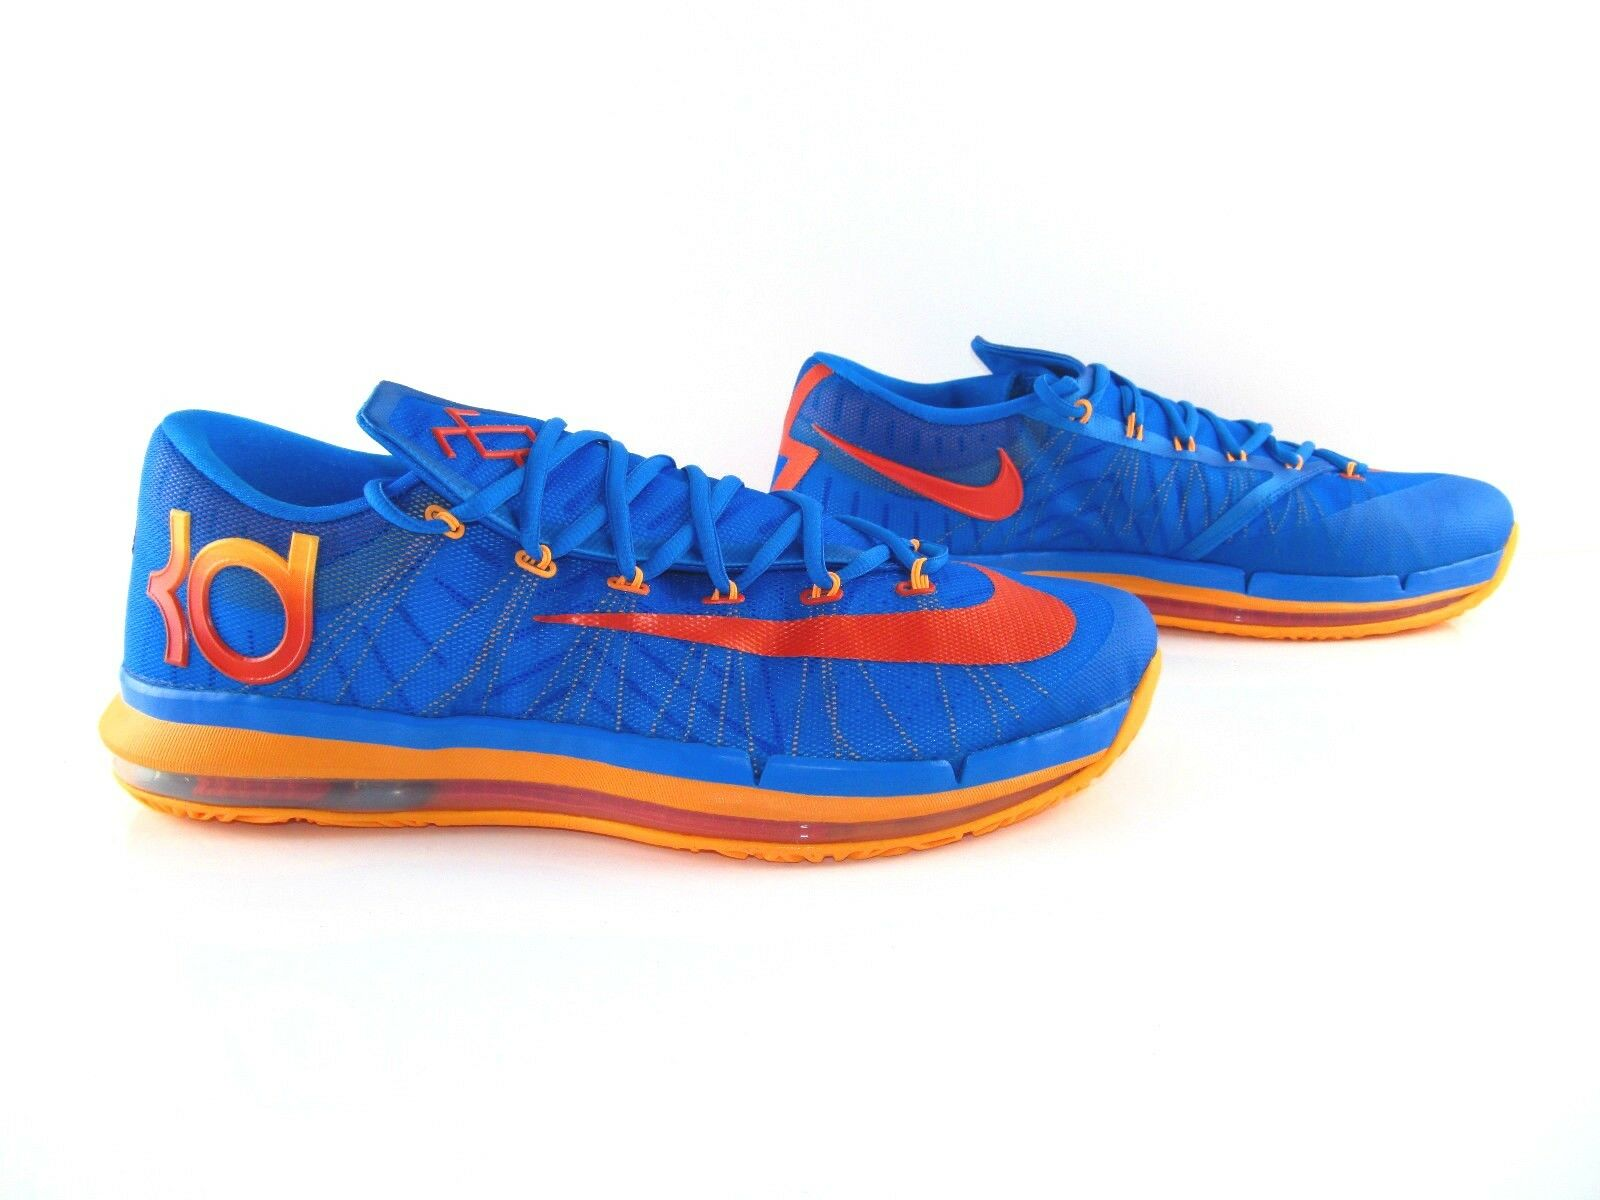 Nike KD VI 6 Elite Series Photo Blue Orange Basketball Sneakers US_15 EUR_49.5